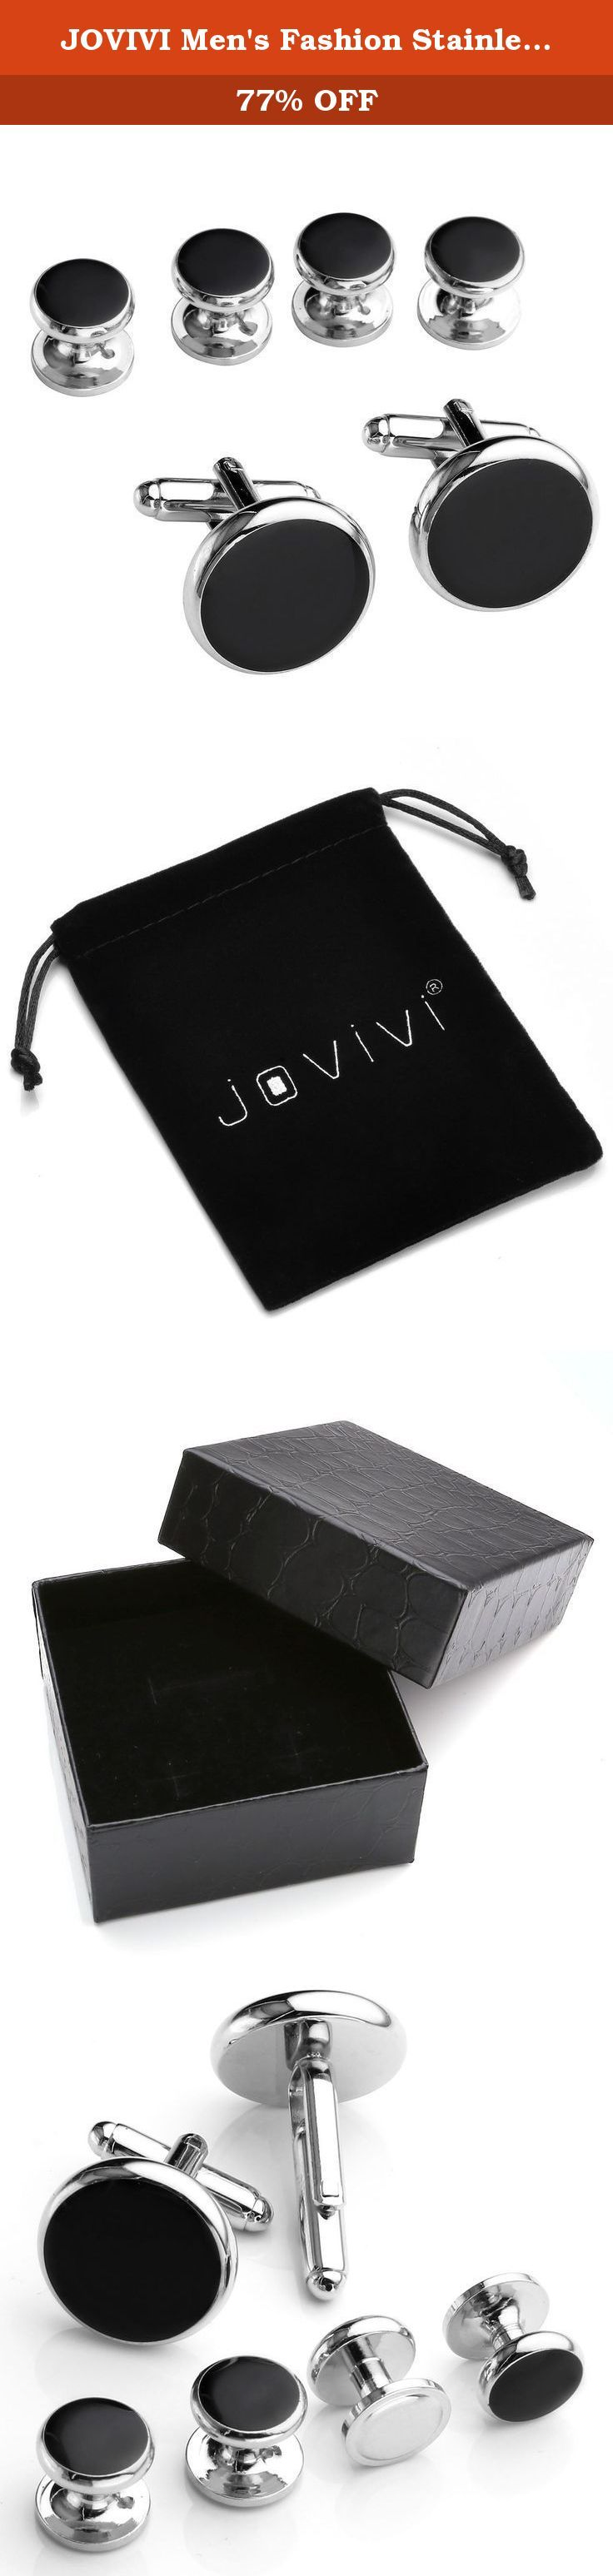 JOVIVI Men's Fashion Stainless Steel Luxurious Tuxedo Shirts Cufflinks and Dress Shirt Studs Set w/Box. *Thank you for visiting JOVIVI Store. We are specializing in jewelry making beads and findings. *If you like this product, we advise you add it to wish list now, so that we will inform you immediately once it has a discount. *And you can click our brand name which on the top of the title; you can find more jewelry making beads with high quality and reasonable price. *If you have any...